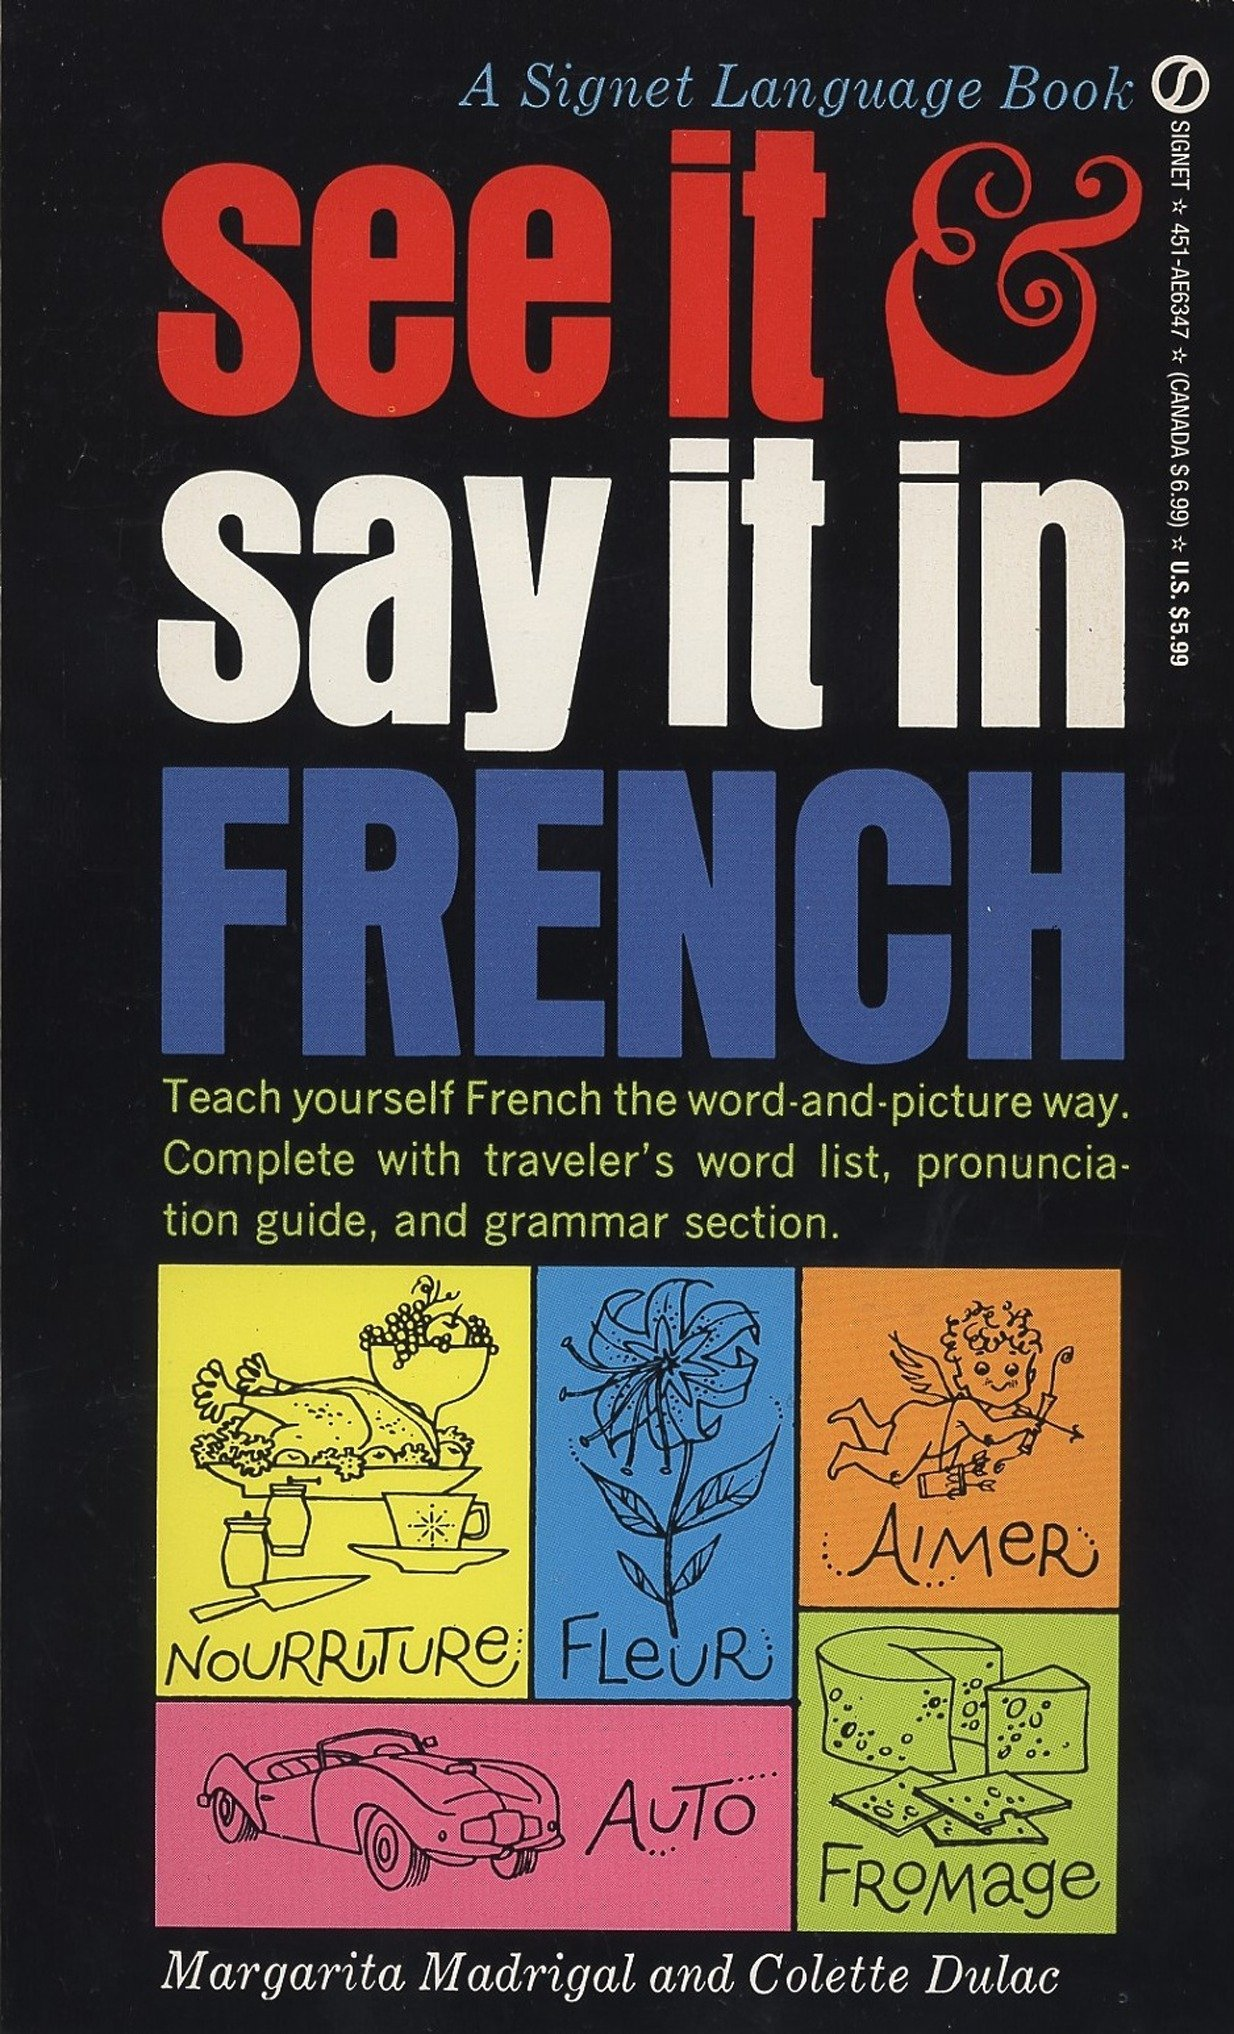 See it and say it in french a beginners guide to learning french see it and say it in french a beginners guide to learning french the word and picture way margarita madrigal colette dulac 9780451163479 amazon solutioingenieria Choice Image